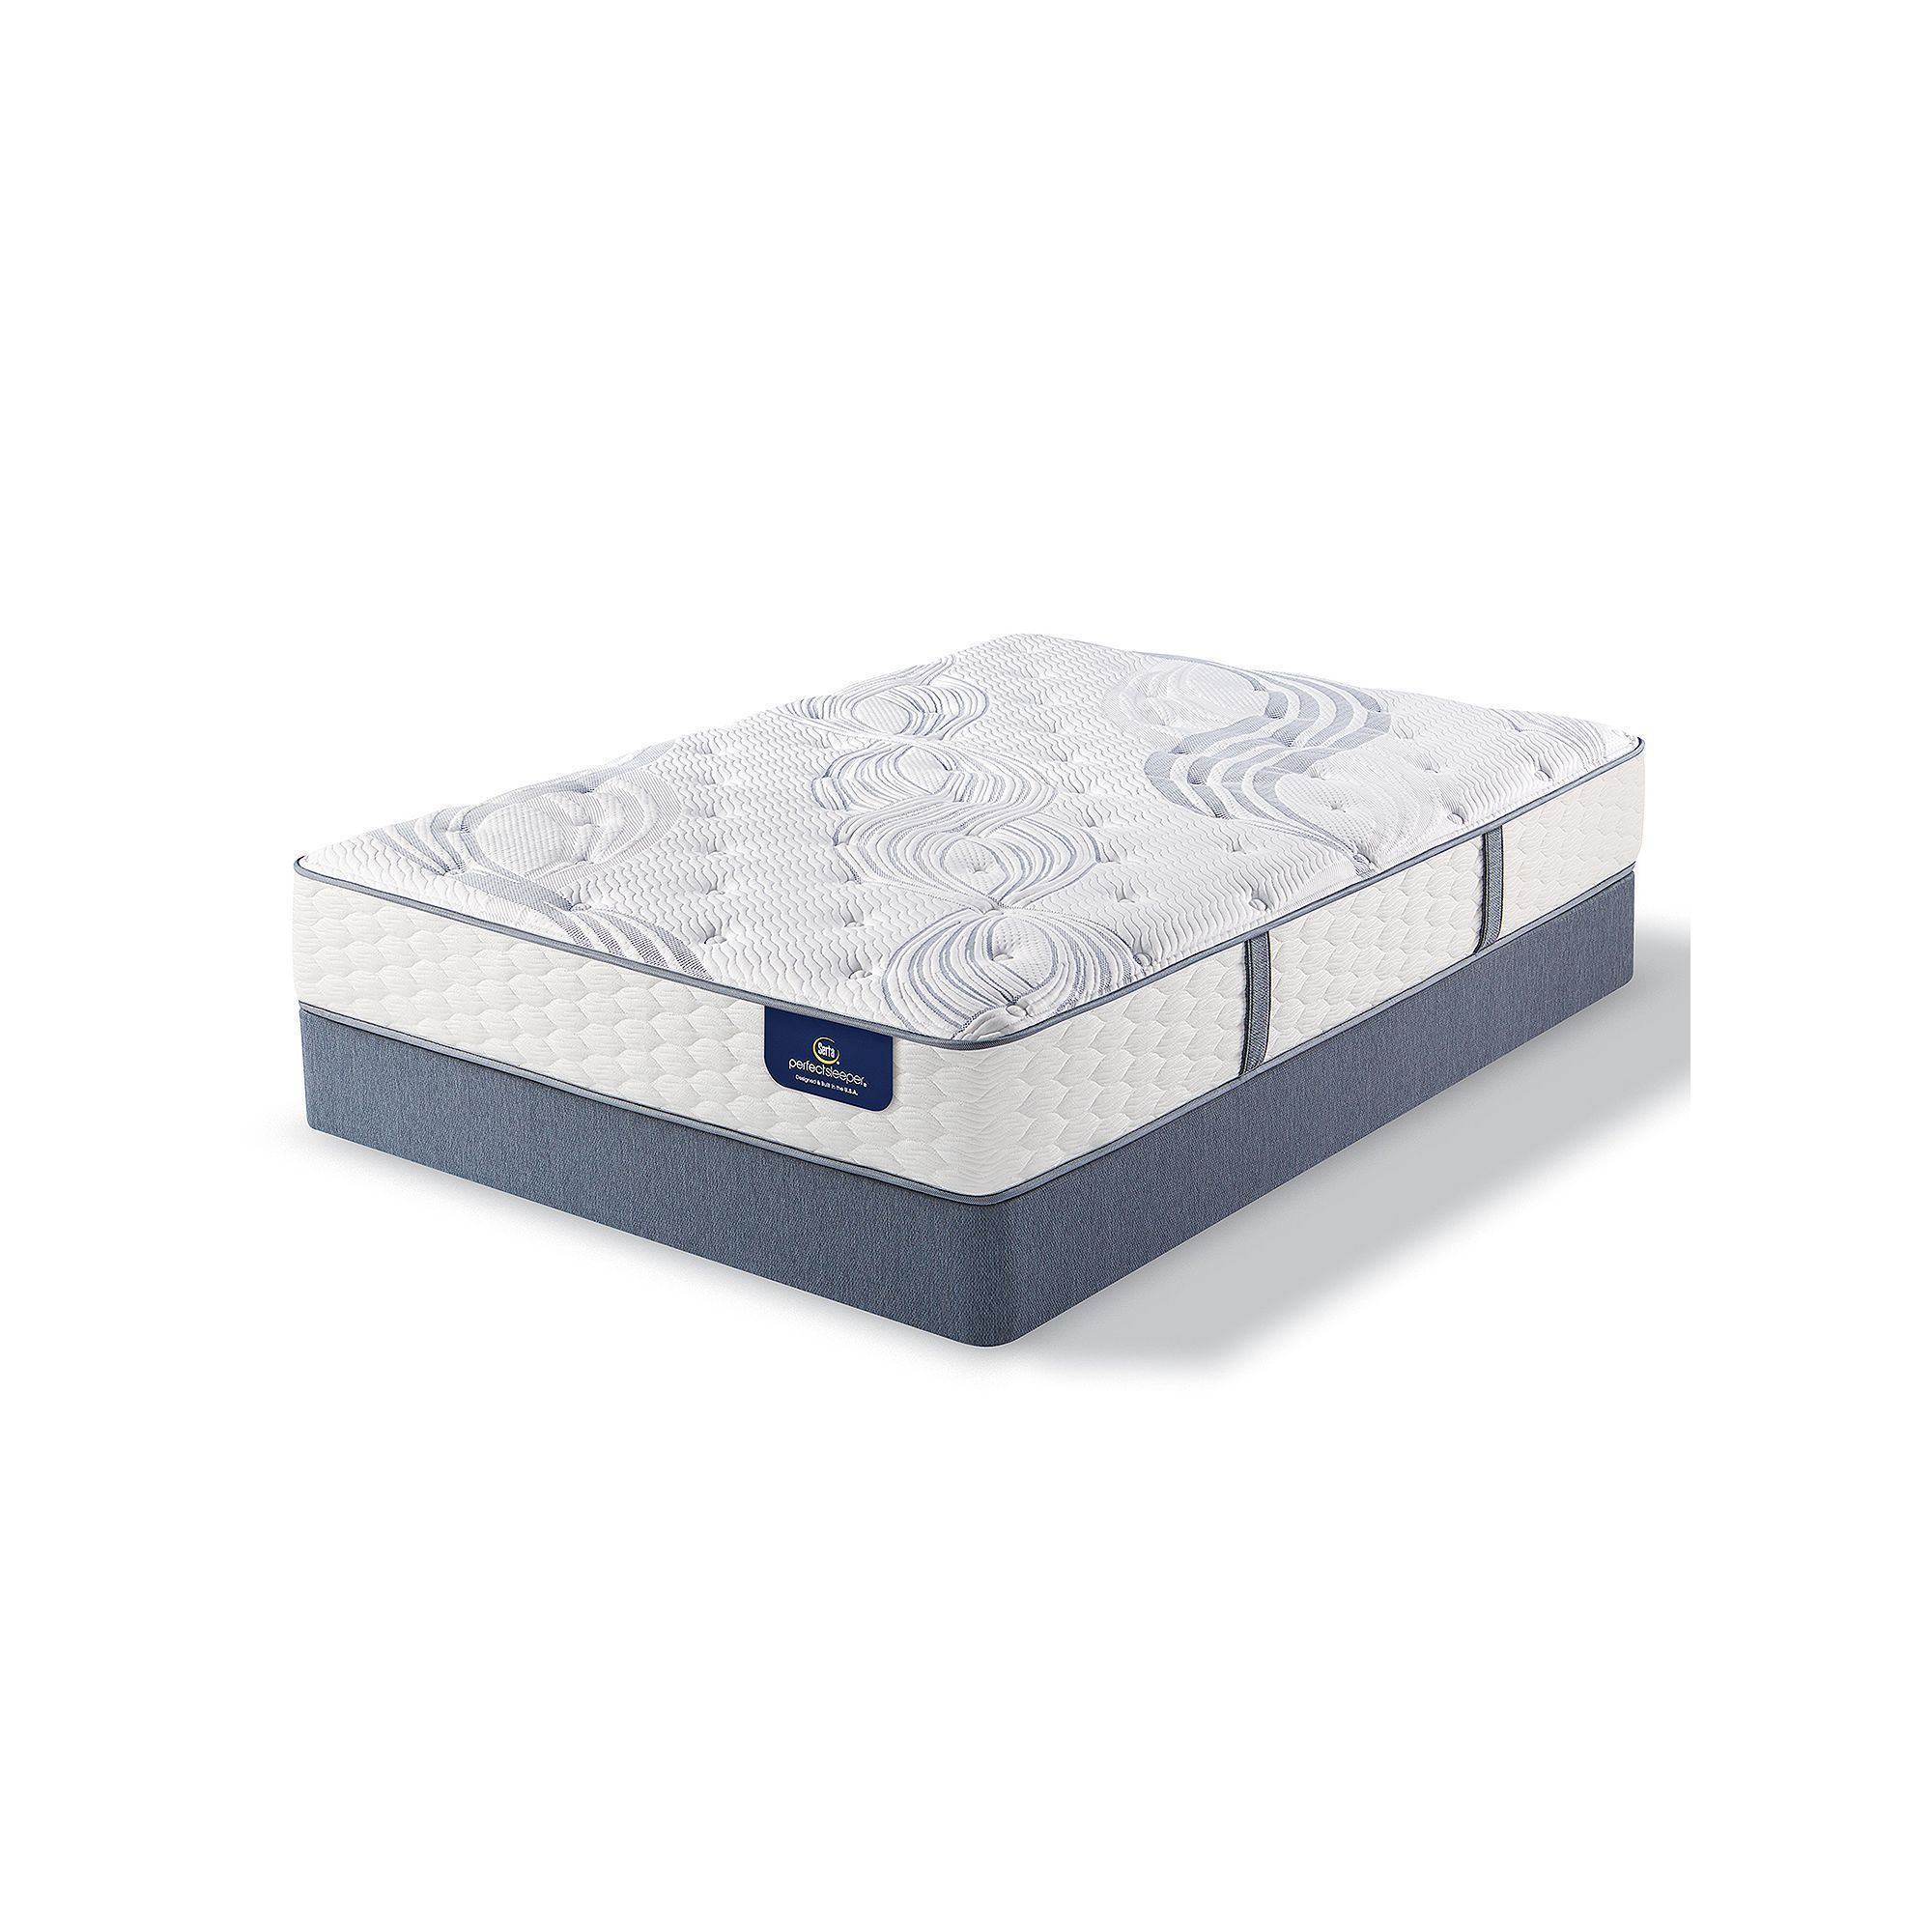 Serta Dalston Luxury Firm Mattress & Box Spring Set White